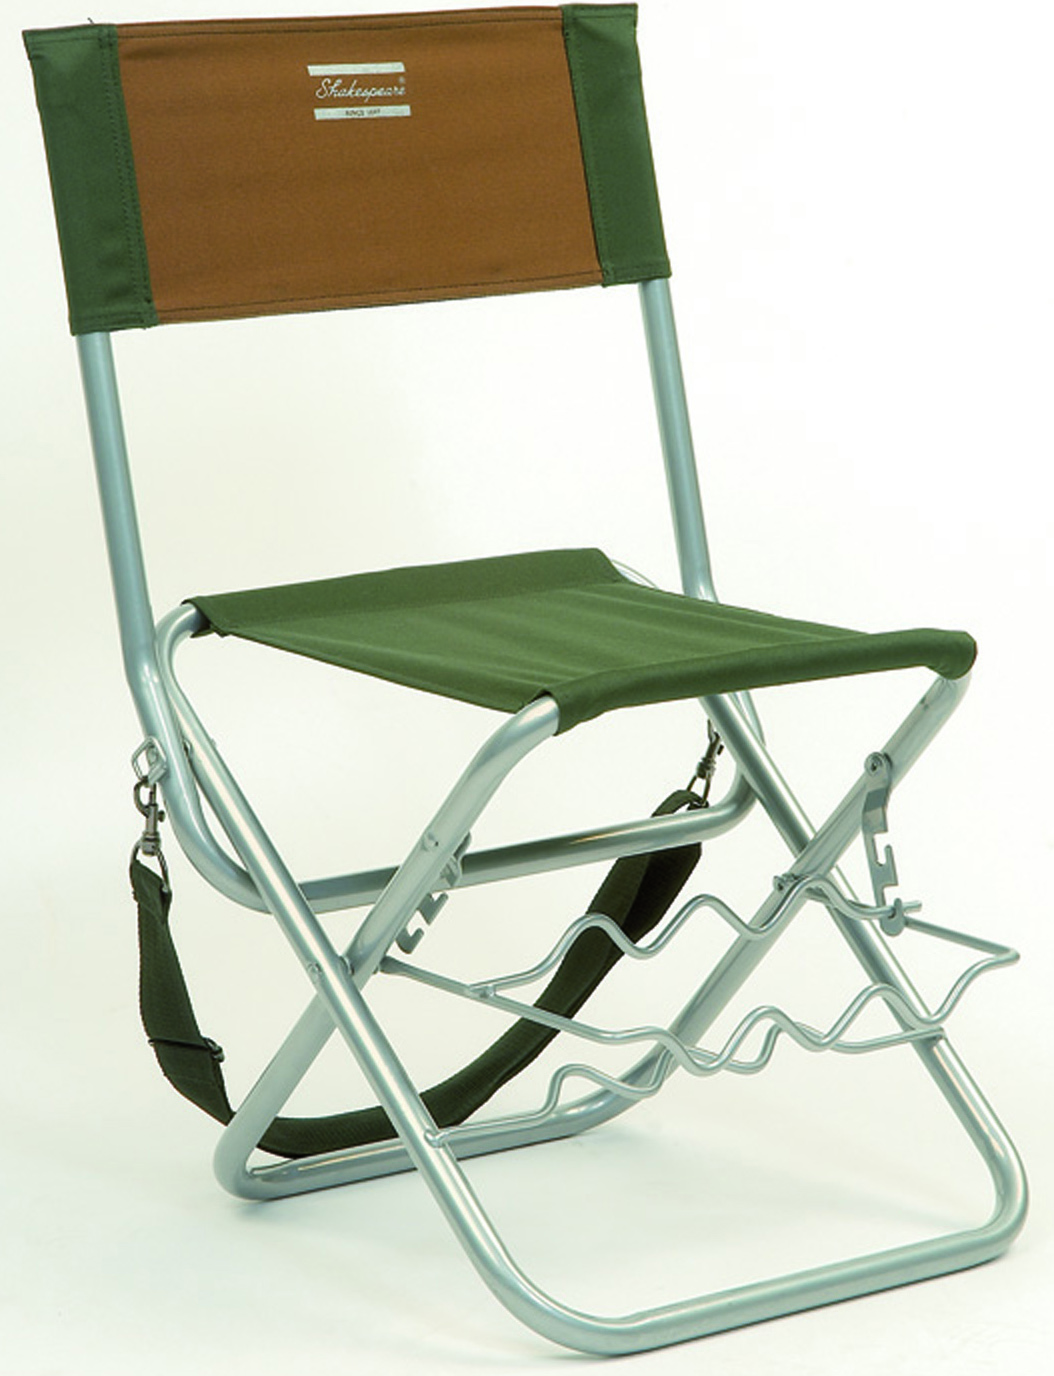 fishing chairs folding picnic shakespeare chair with rod rest  glasgow angling